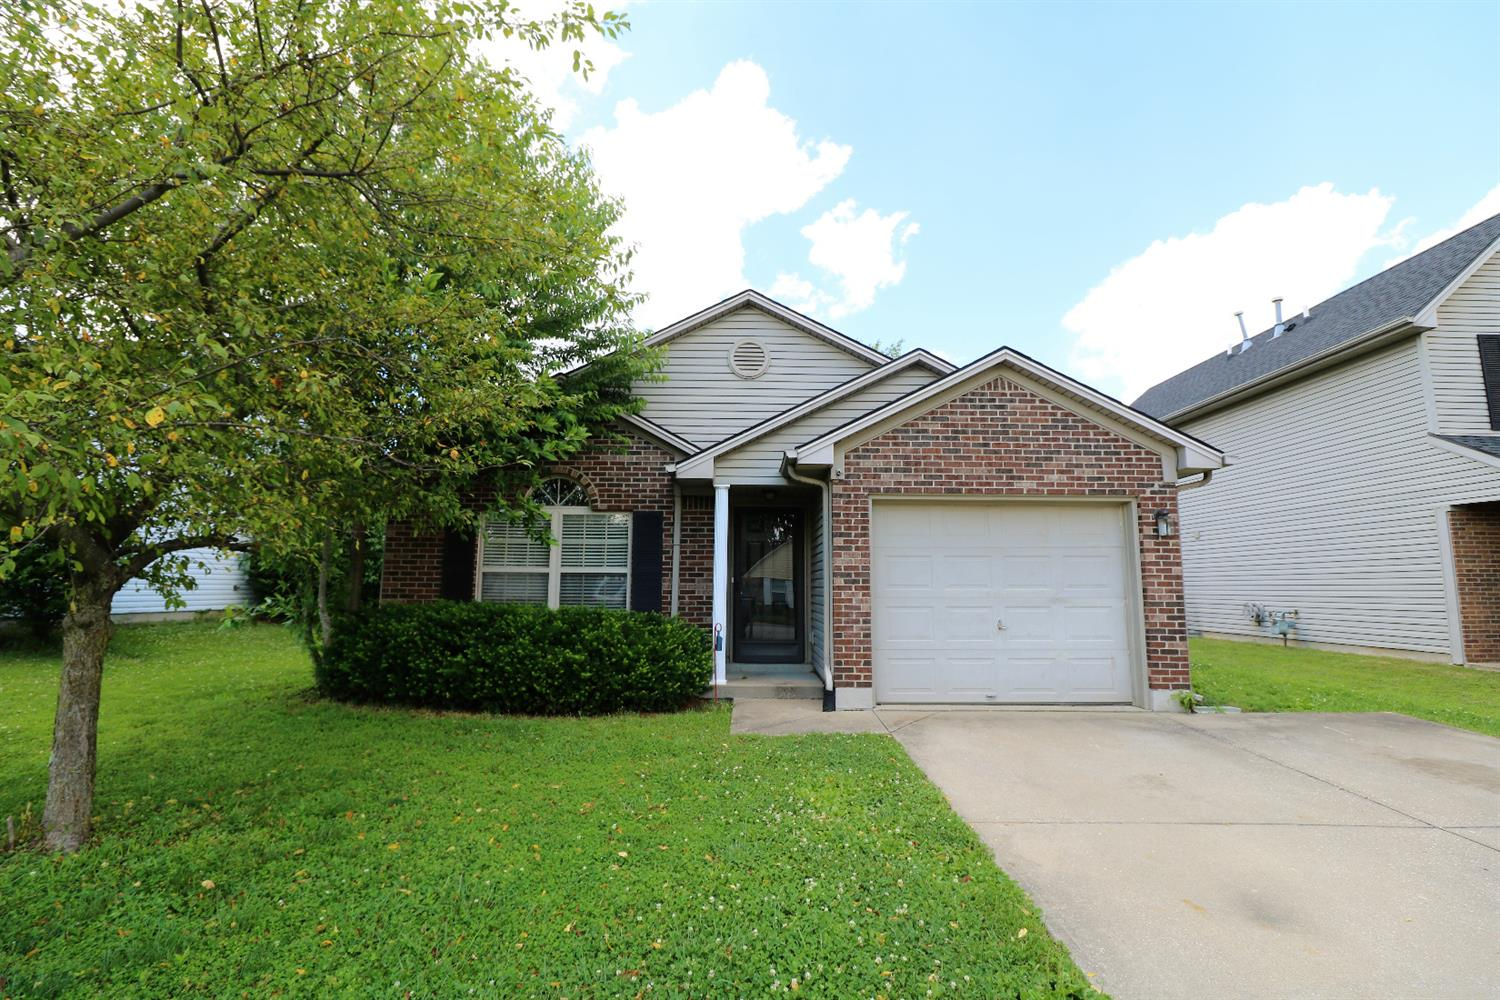 Enjoy%20easy%20one%20story%20living%20in%20this%20charming%20ranch%20home%20with%20a%20covered%20front%20porch.%20Open%20the%20front%20door%20and%20let%20the%20natural%20light%20flood%20through%20the%20full%20length%20storm%20door.%20The%20light%20colored%20laminate%20flooring%20in%20the%20foyer,%20hallway%20and%20living%20area%20adds%20additional%20light%20and%20bright%20feeling%20in%20the%20open%20concept%20floor%20plan.%20You%20will%20also%20love%20the%20fenced%20back%20yard%20with%20some%20trees%20for%20privacy.%20Super%20cute%20house!